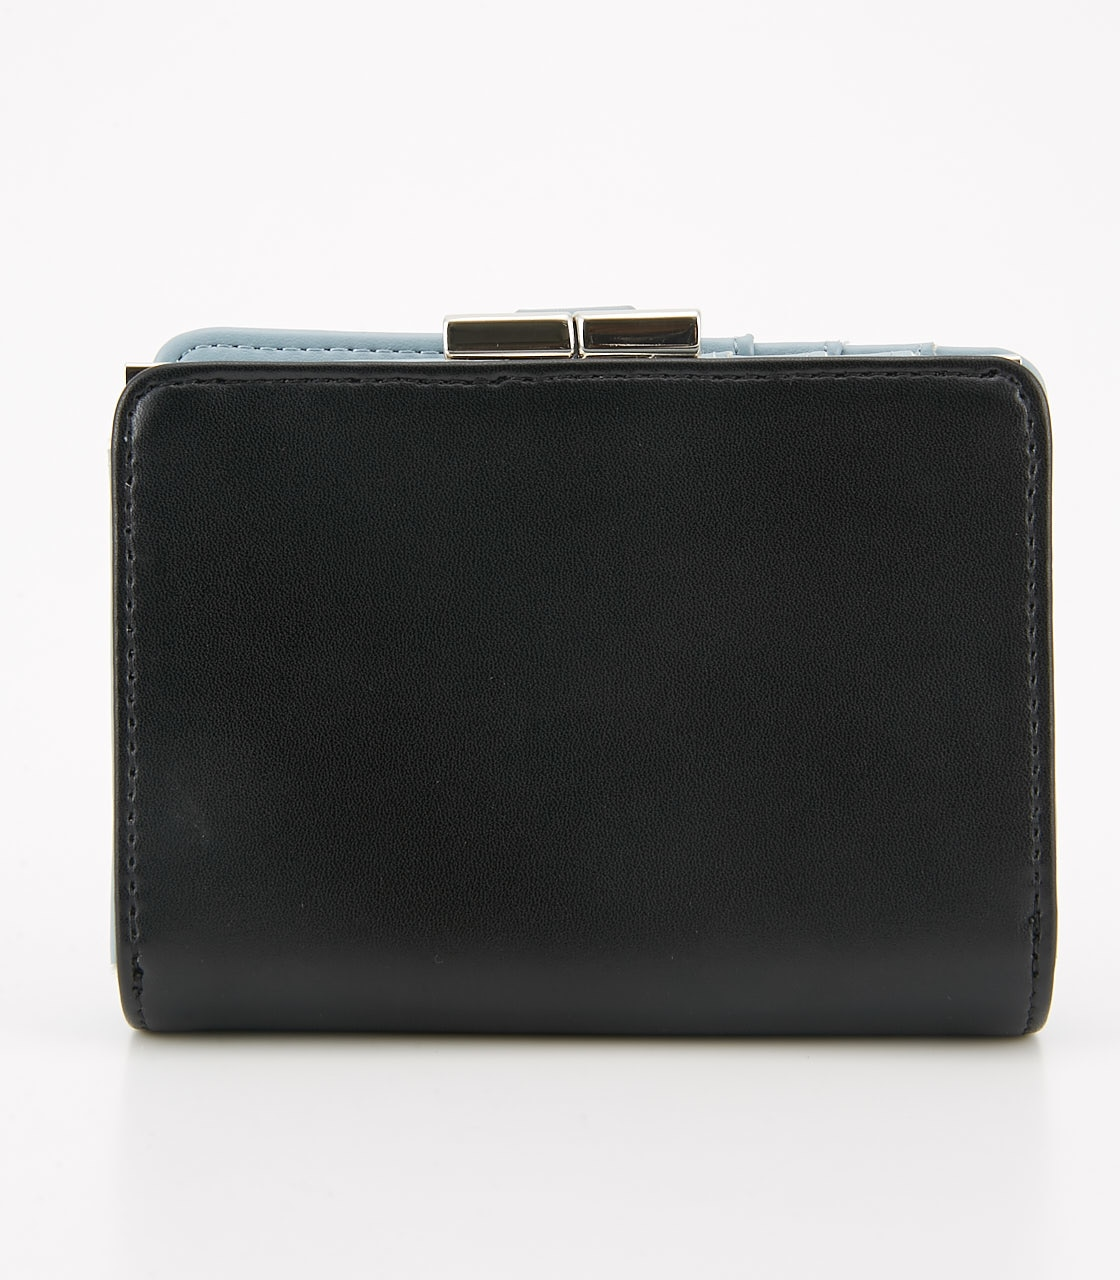 【AZUL BY MOUSSY】COLOR POINT WALLET 詳細画像 BLK 2